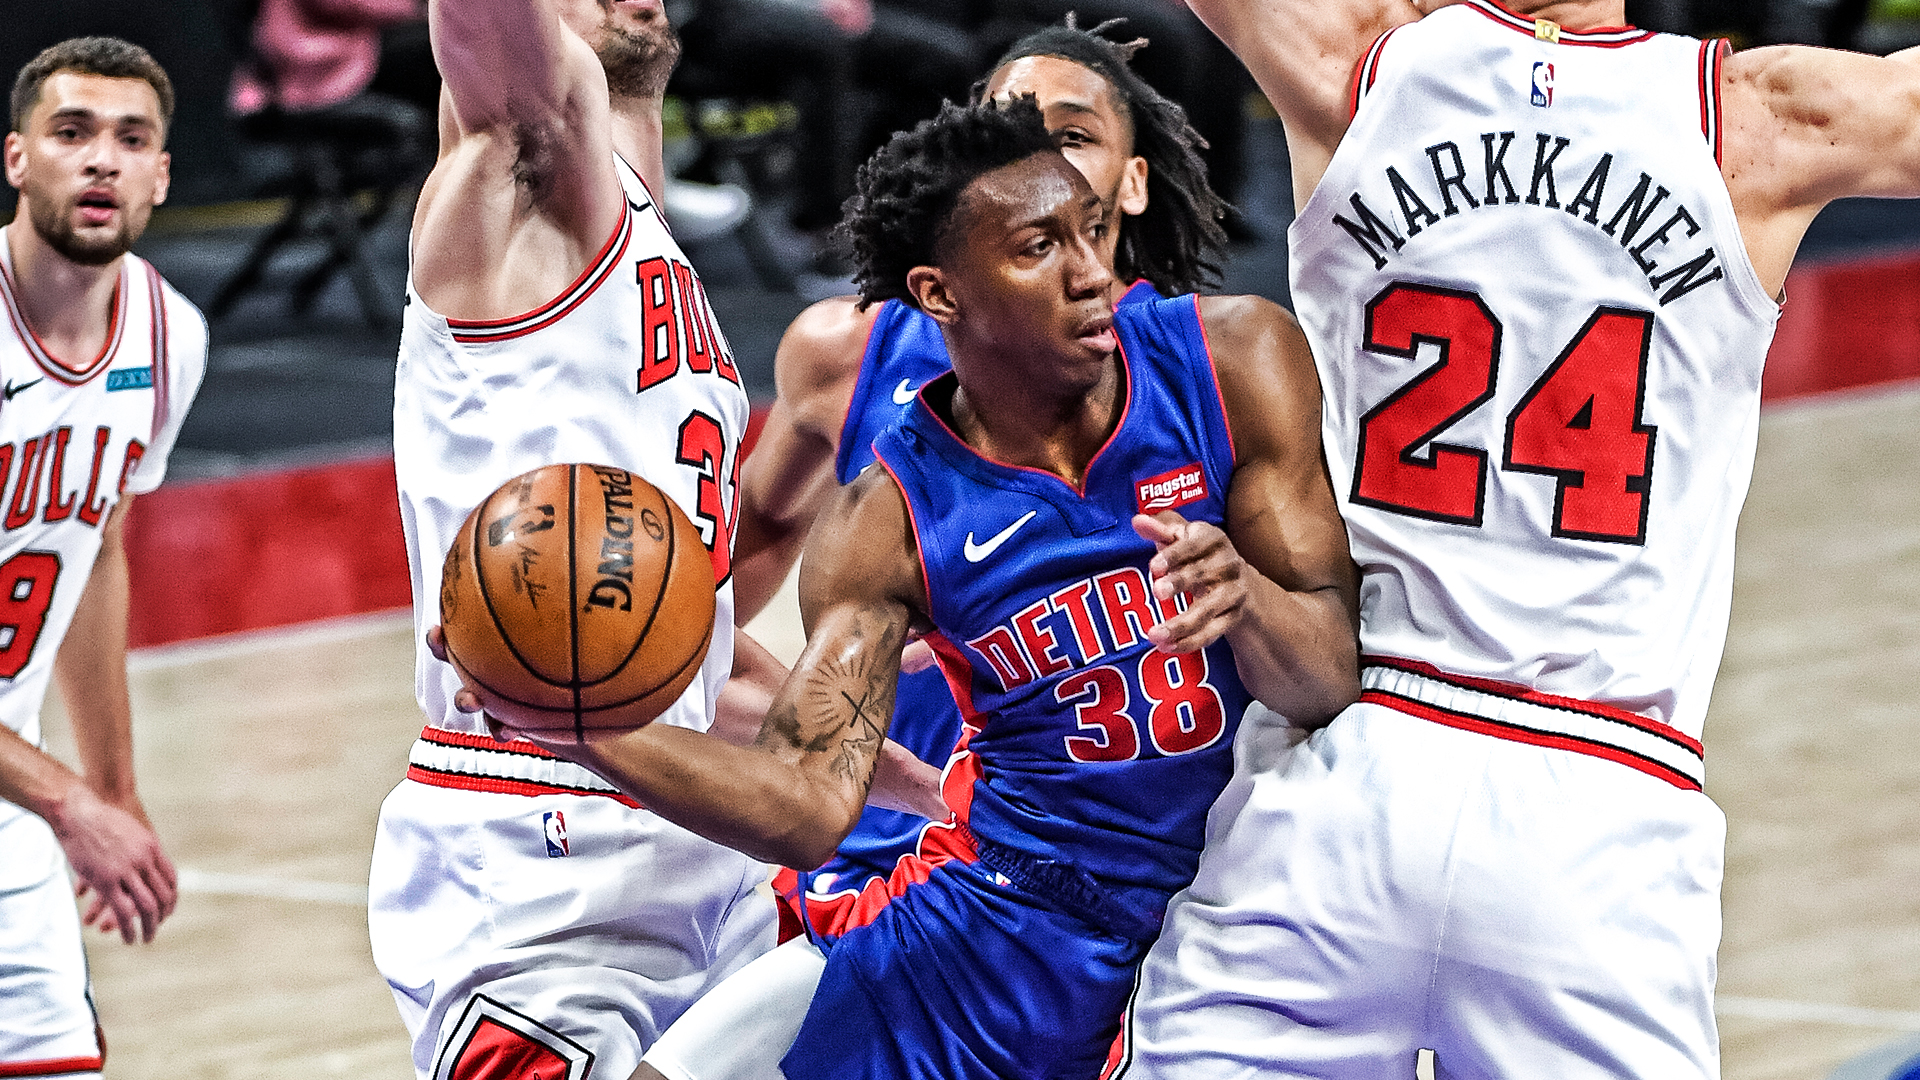 Pistons Playback, presented by Flagstar: Pistons vs Bulls